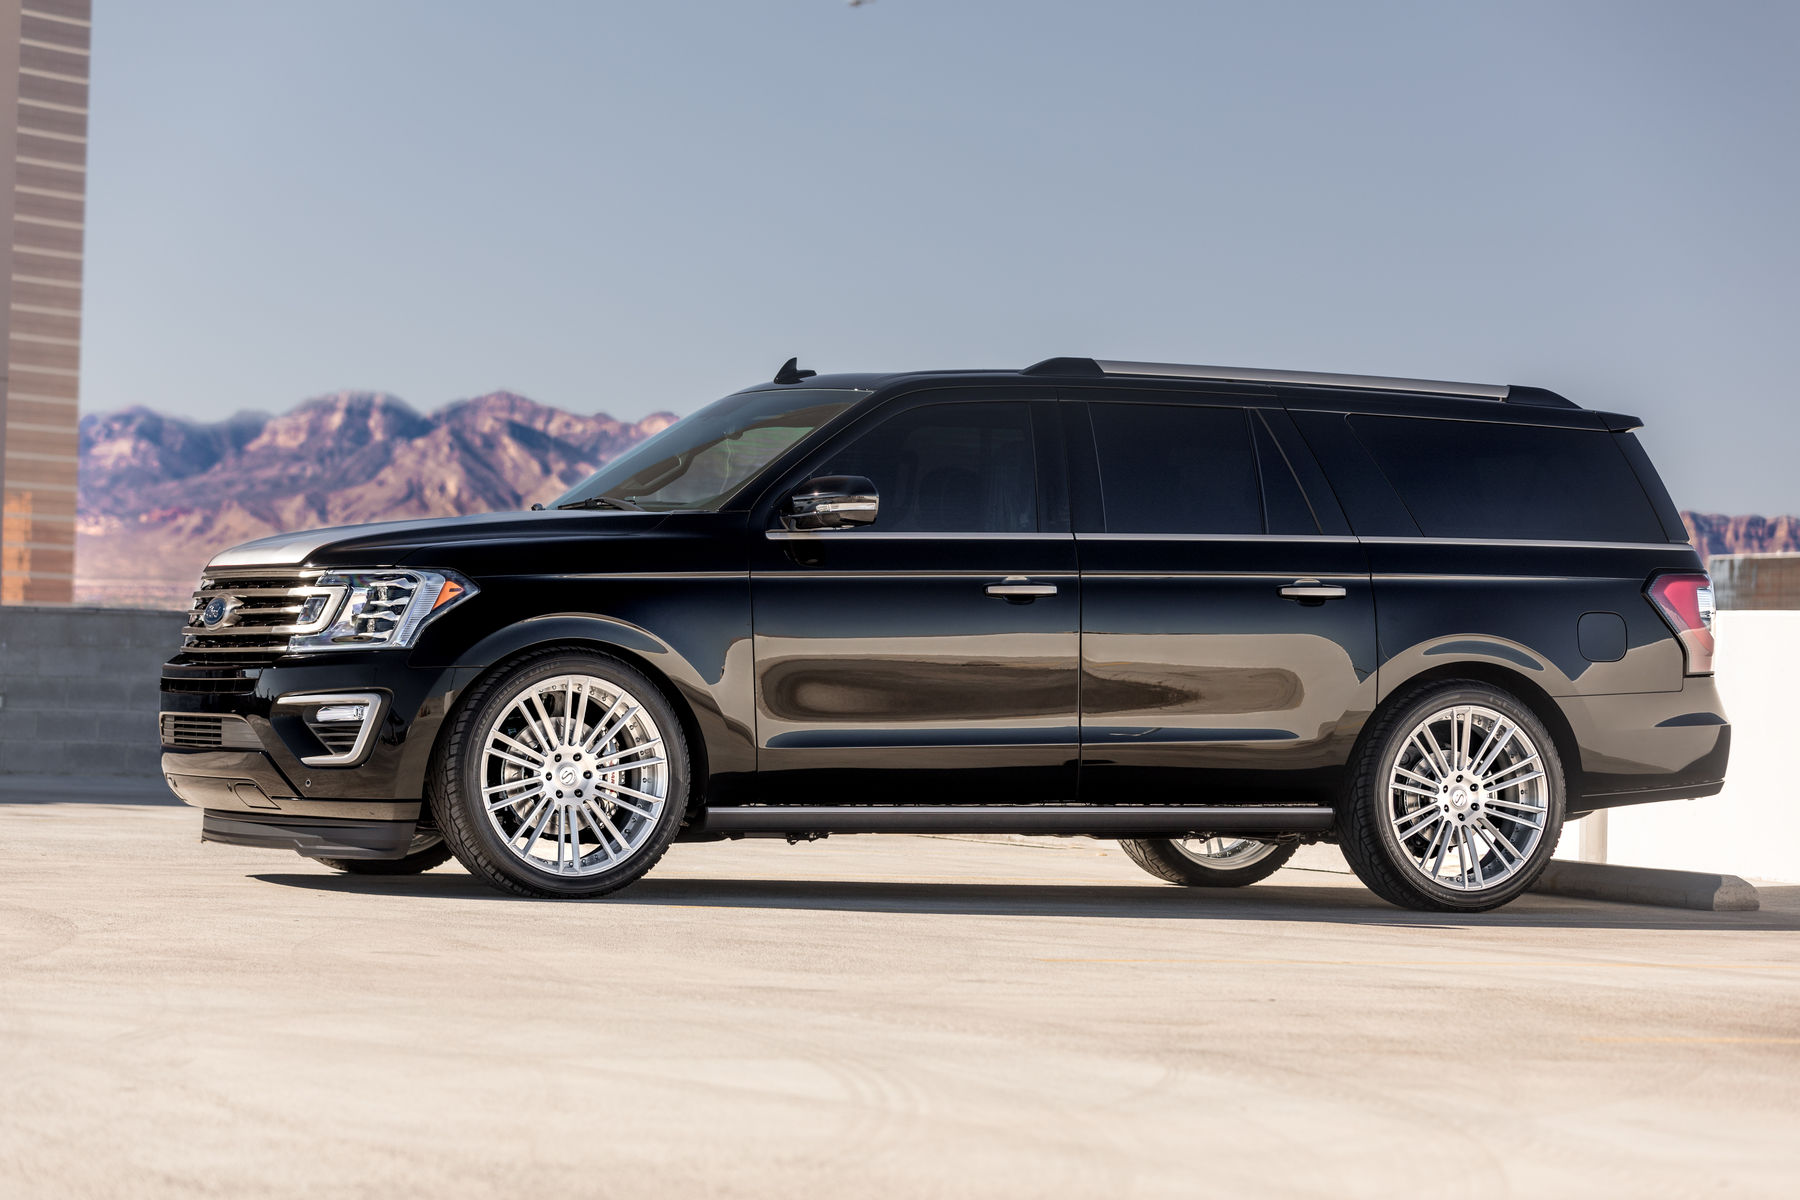 2018 ford expedition 2018 ford expedition limited max by cgs performance products axalta coating